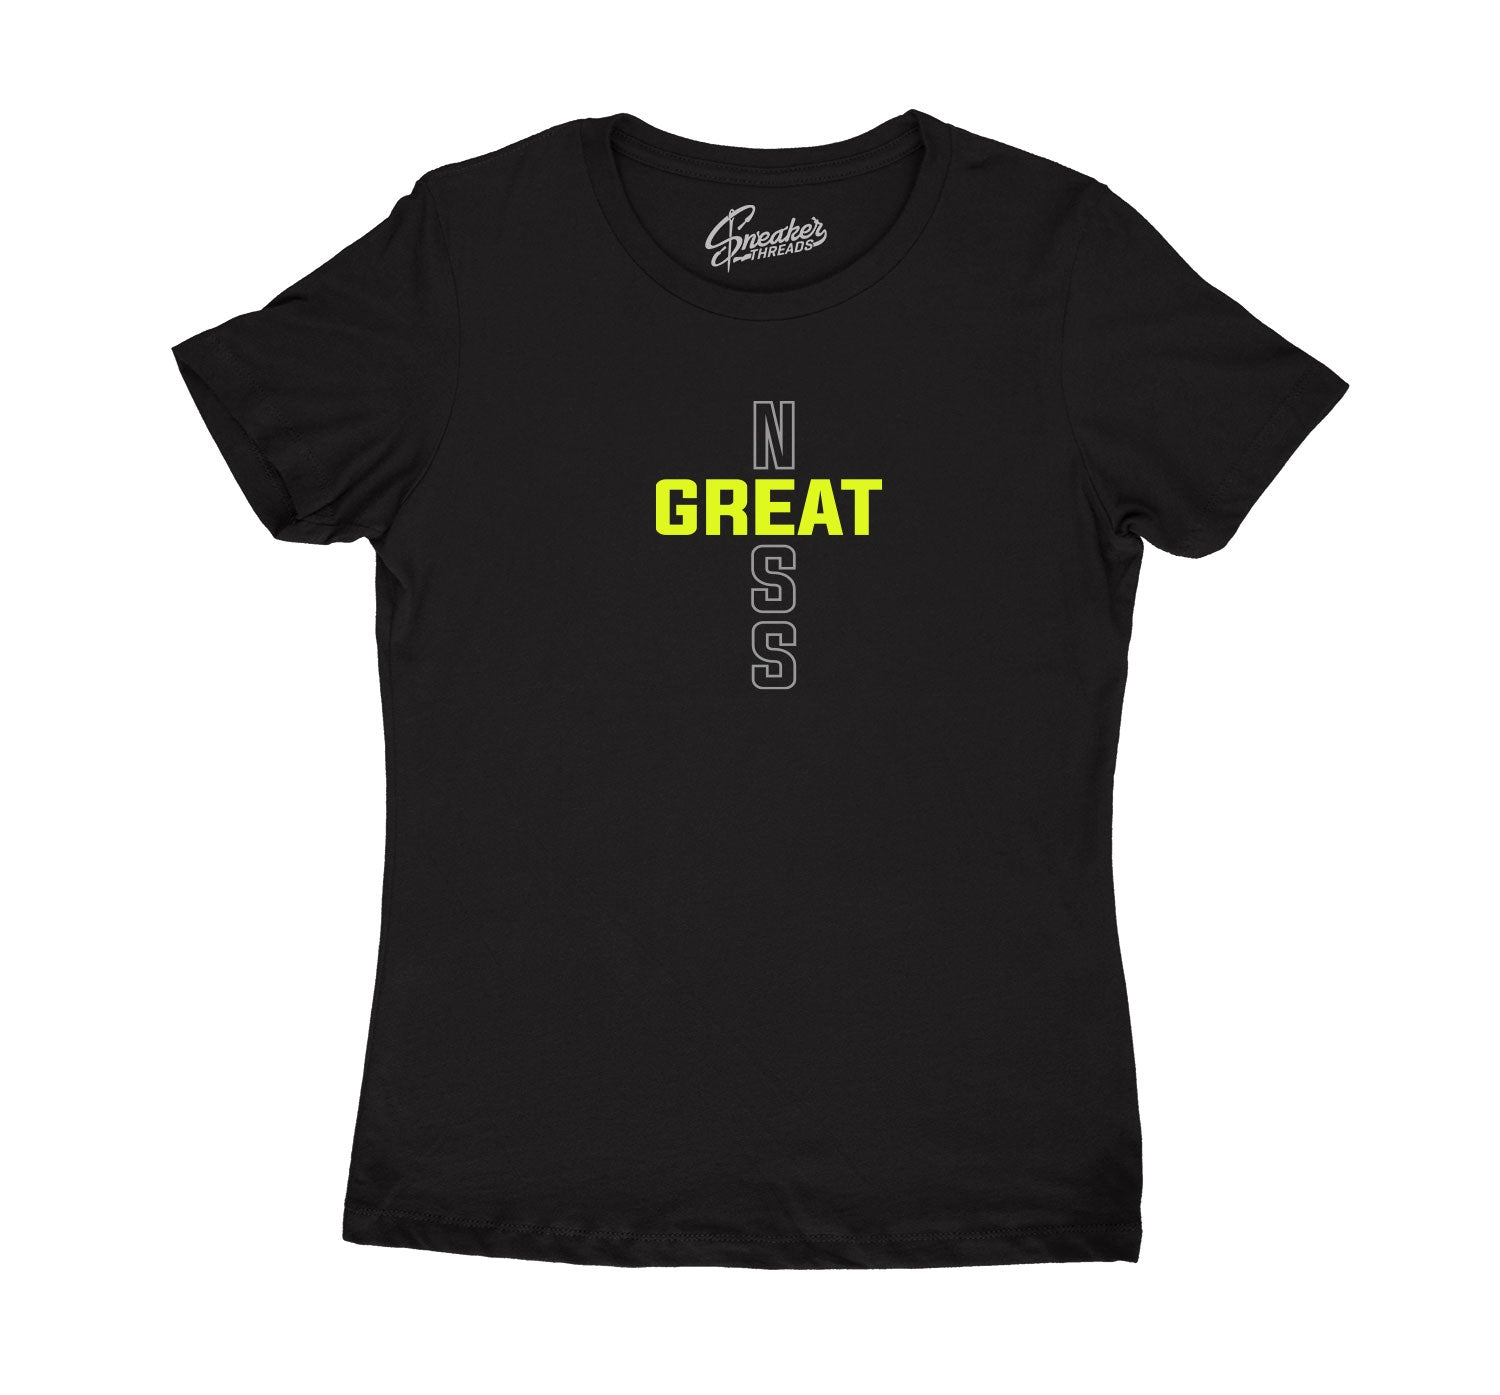 Jordan 4 neon volt retro sneaker collection matches with girls tees